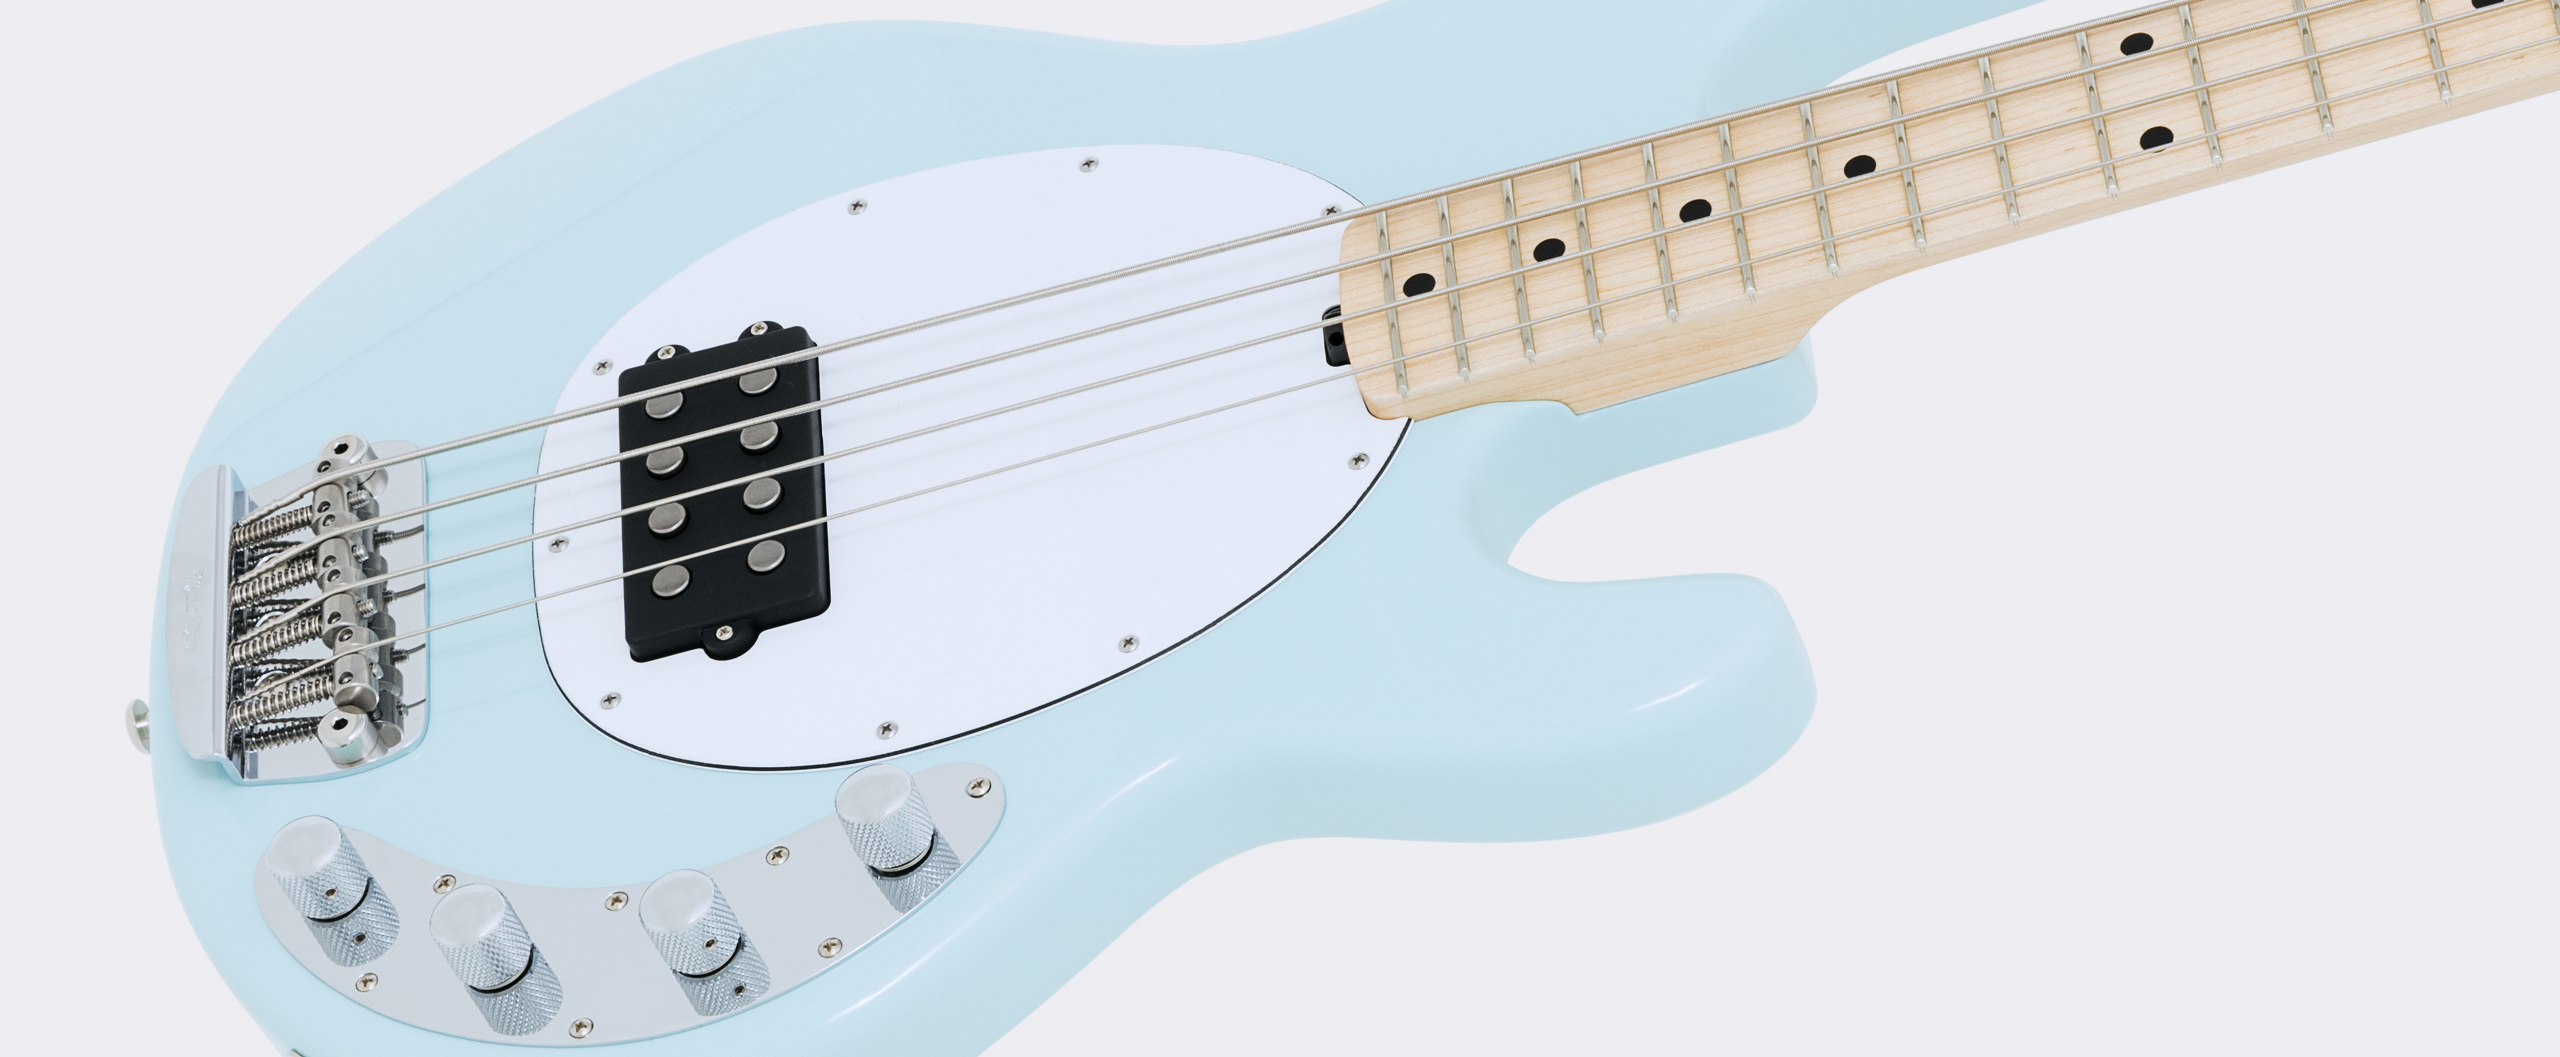 Stingray Basses Ernie Ball Music Man Electric Guitar Wire Diagram 2 Volumms 1tone Humbuckers Alnico Humbucking Pickup